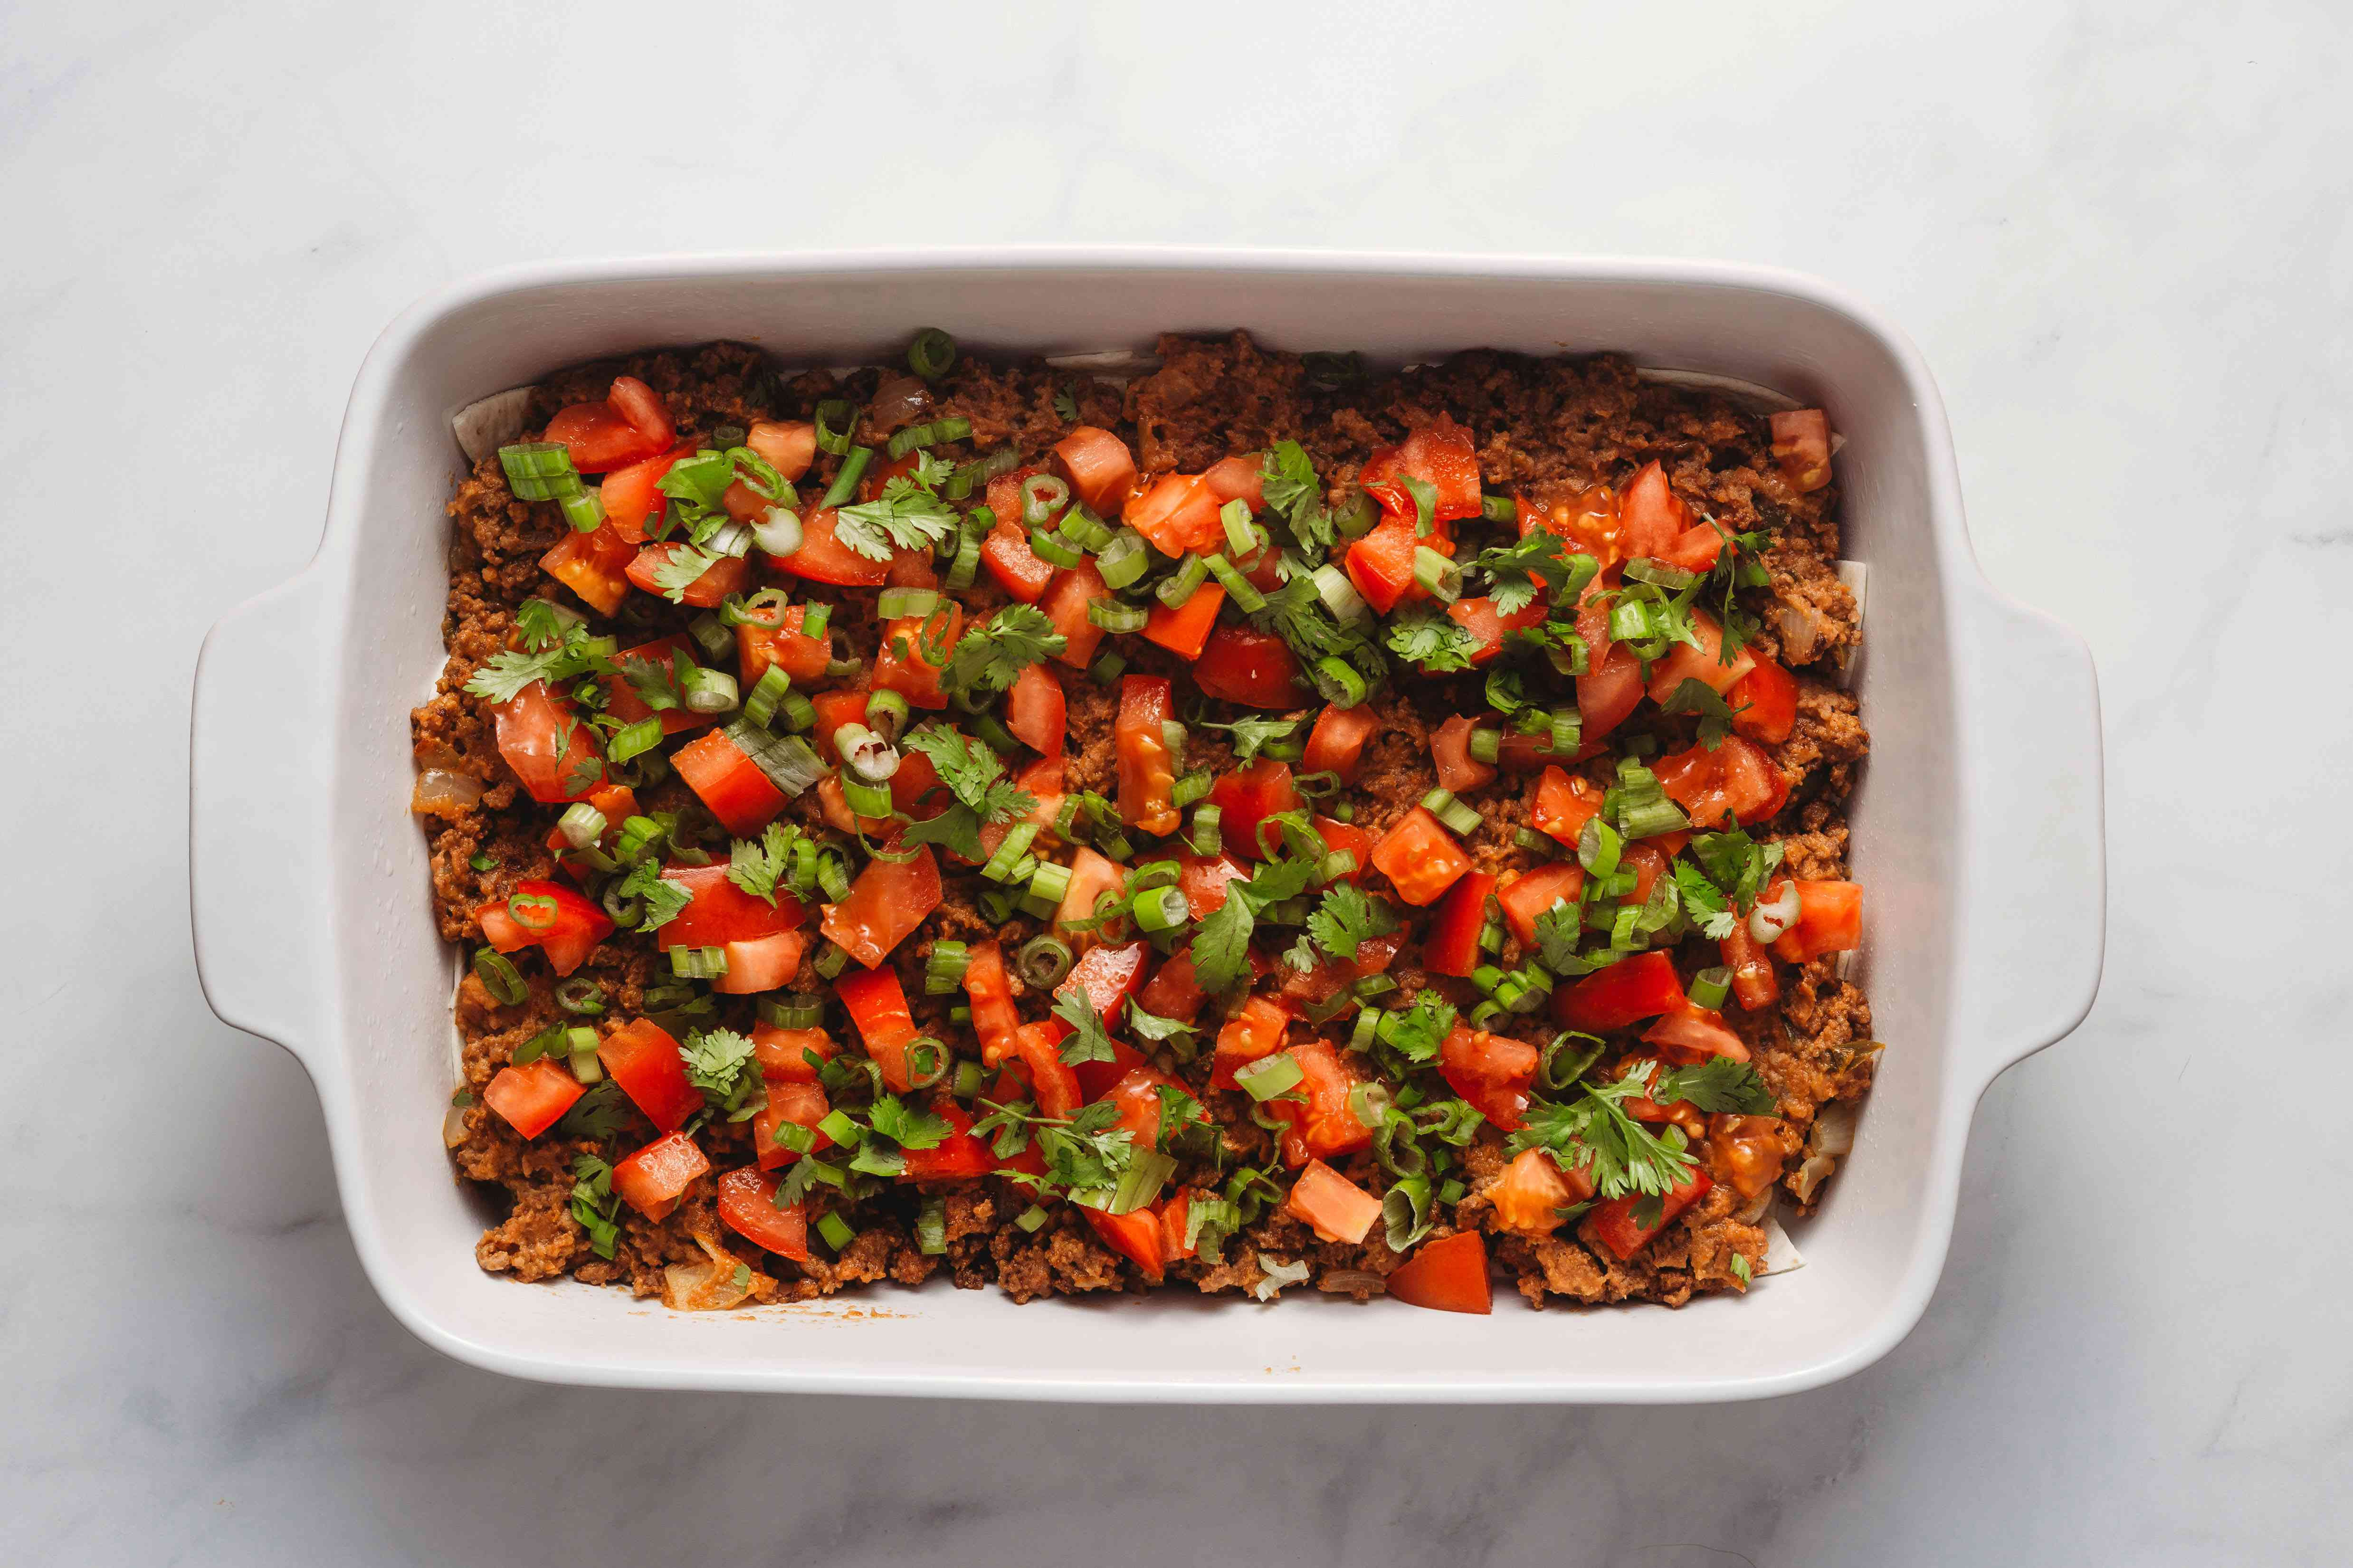 beef mixture and raw vegetables in the baking dish